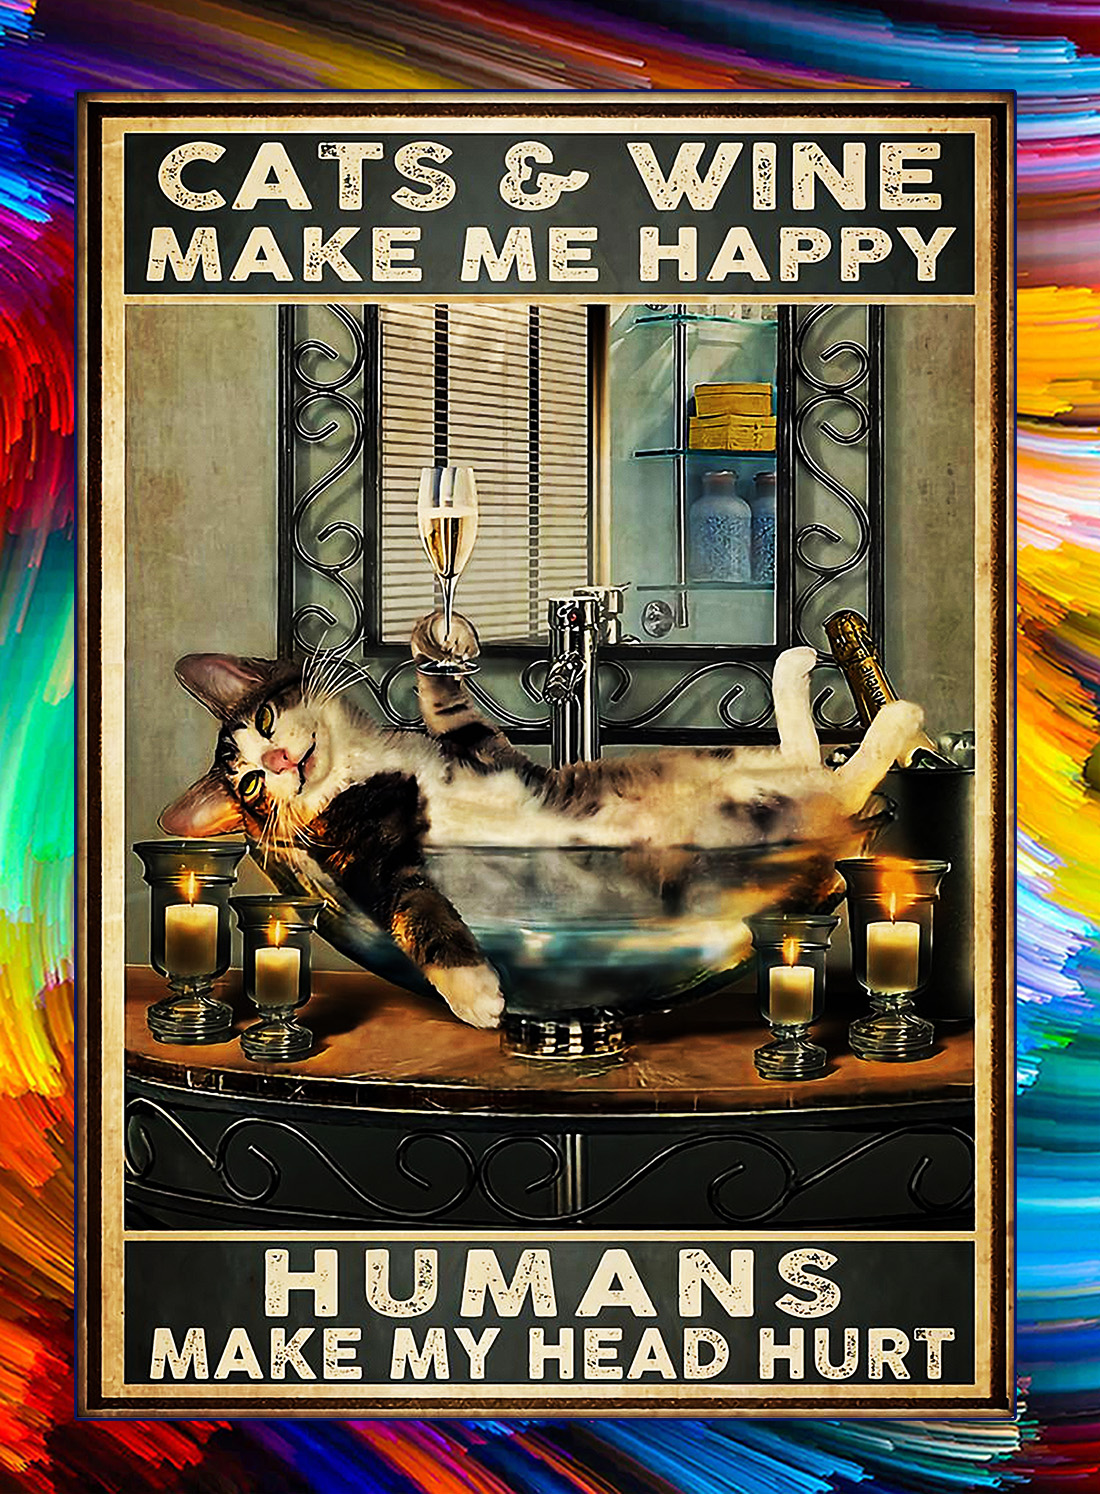 Cats and wine make me happy humans make my head hurt poster - A4